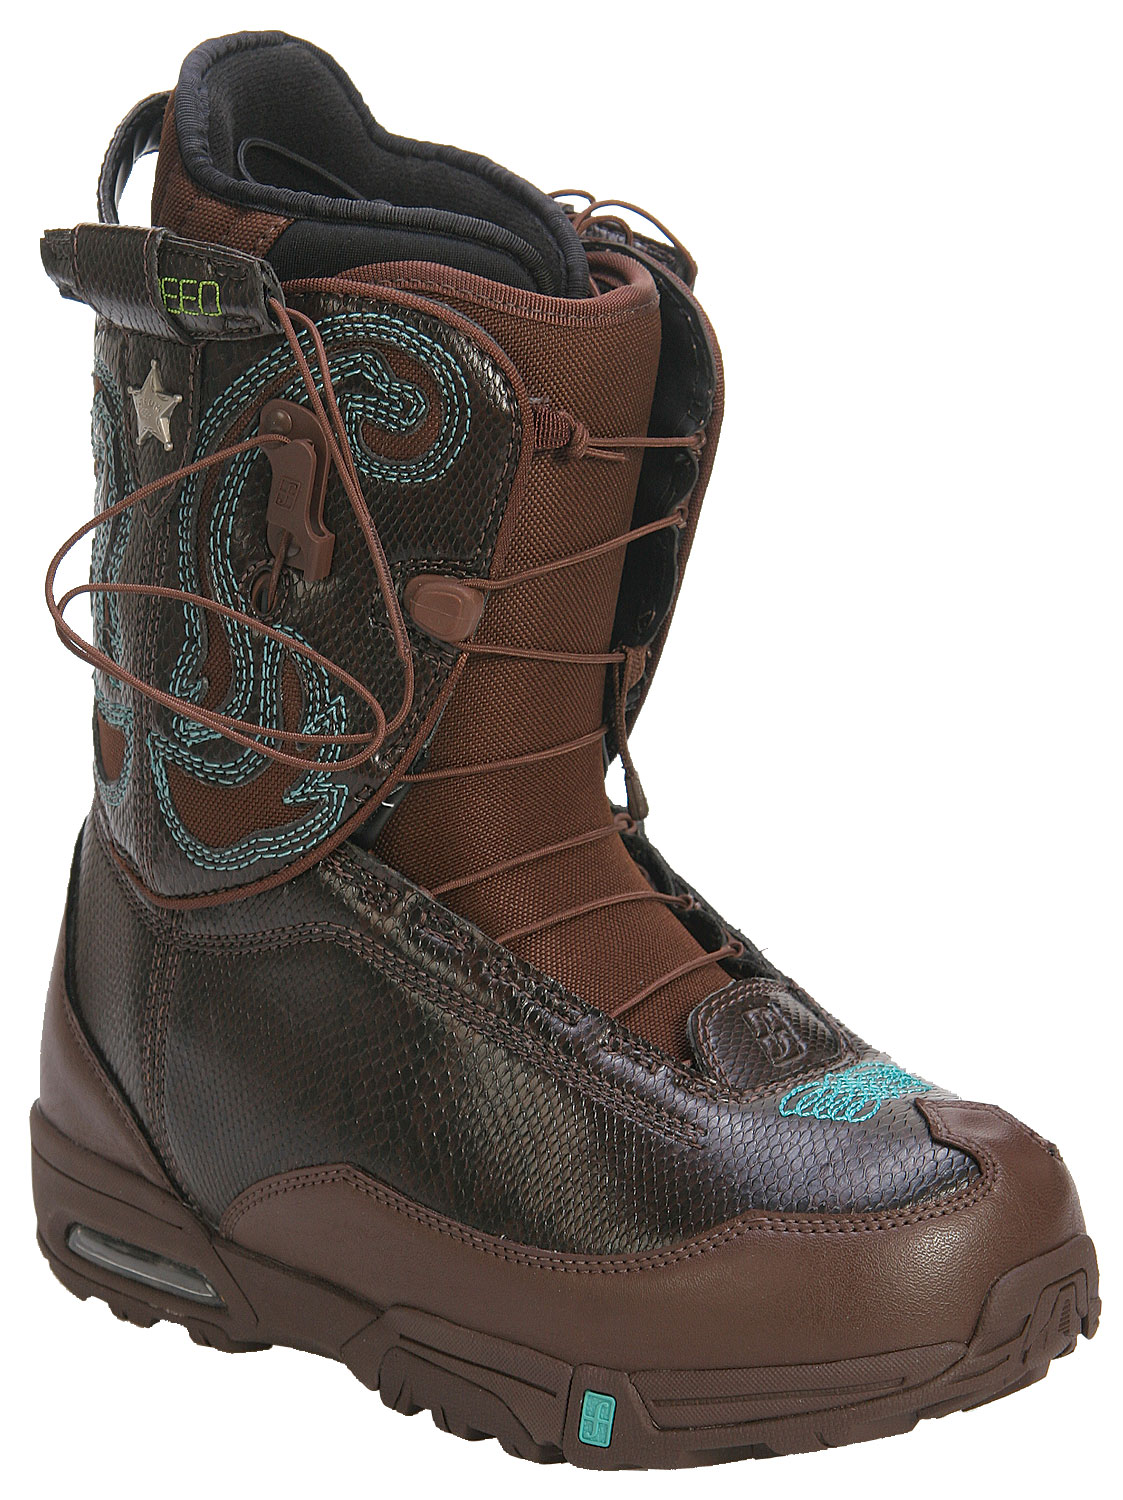 Snowboard The freestyle standard with hinky tonk flair. Returning for a second season by popular demand, our Western-inspired Stampede SLR is a lightweight technical freestyle boot that features our hybrid liner and Forum Speed Lacer (SLR) system, as well as an air-cartridge midsole, articulating external cuff for enhanced performance and supportive internal cuff for optimal heel hold and comfort. Plus, for 2008 we gave it a serious style boost by dressing it in all-over faux snakeskin.Key Features of The Forum Stampede SLR Women's Snowboard Boots: Concentrix Level 2 Liner: This simplified yet highly effective liner features a molded EVA footbed, anatomical PE supports and aegis antimicrobial coating to kill odor Gold Cuff Link: Highly supportive, backless internal cuff returns this season and sports a custom lace look. Attached cuff to the sides of the shell which greatly improves comfort, heel hold and overall fit Air Sole Forum Speed Lacer Lacing System Flex: 6 - $68.95